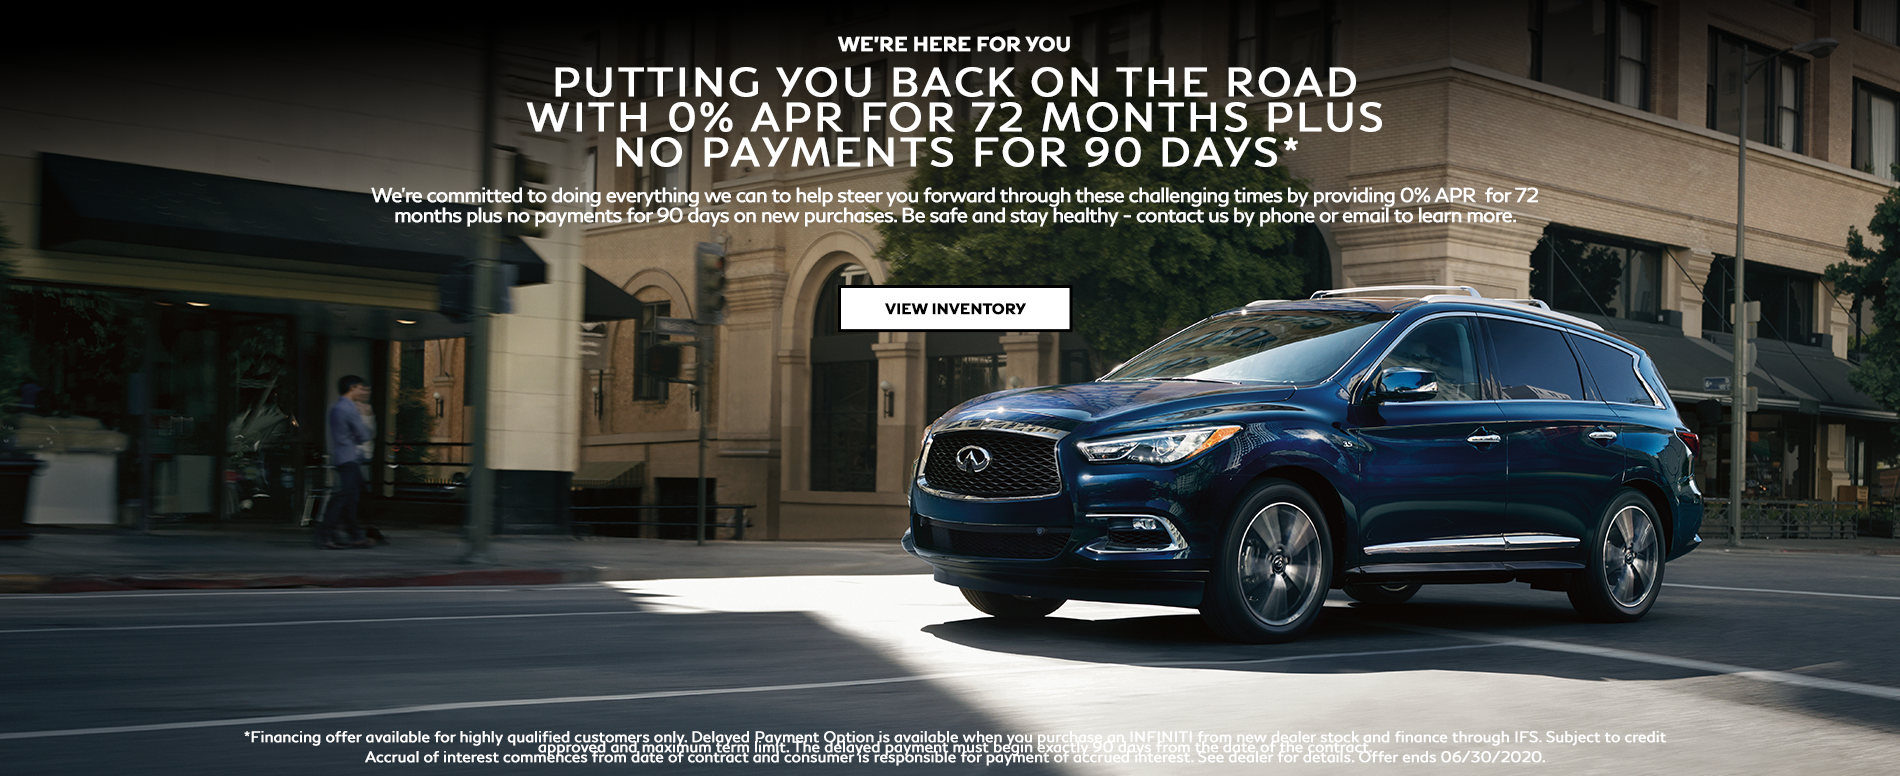 DR INFINITI South is offering 0% APR for 72 months plus 90 day deferred payments